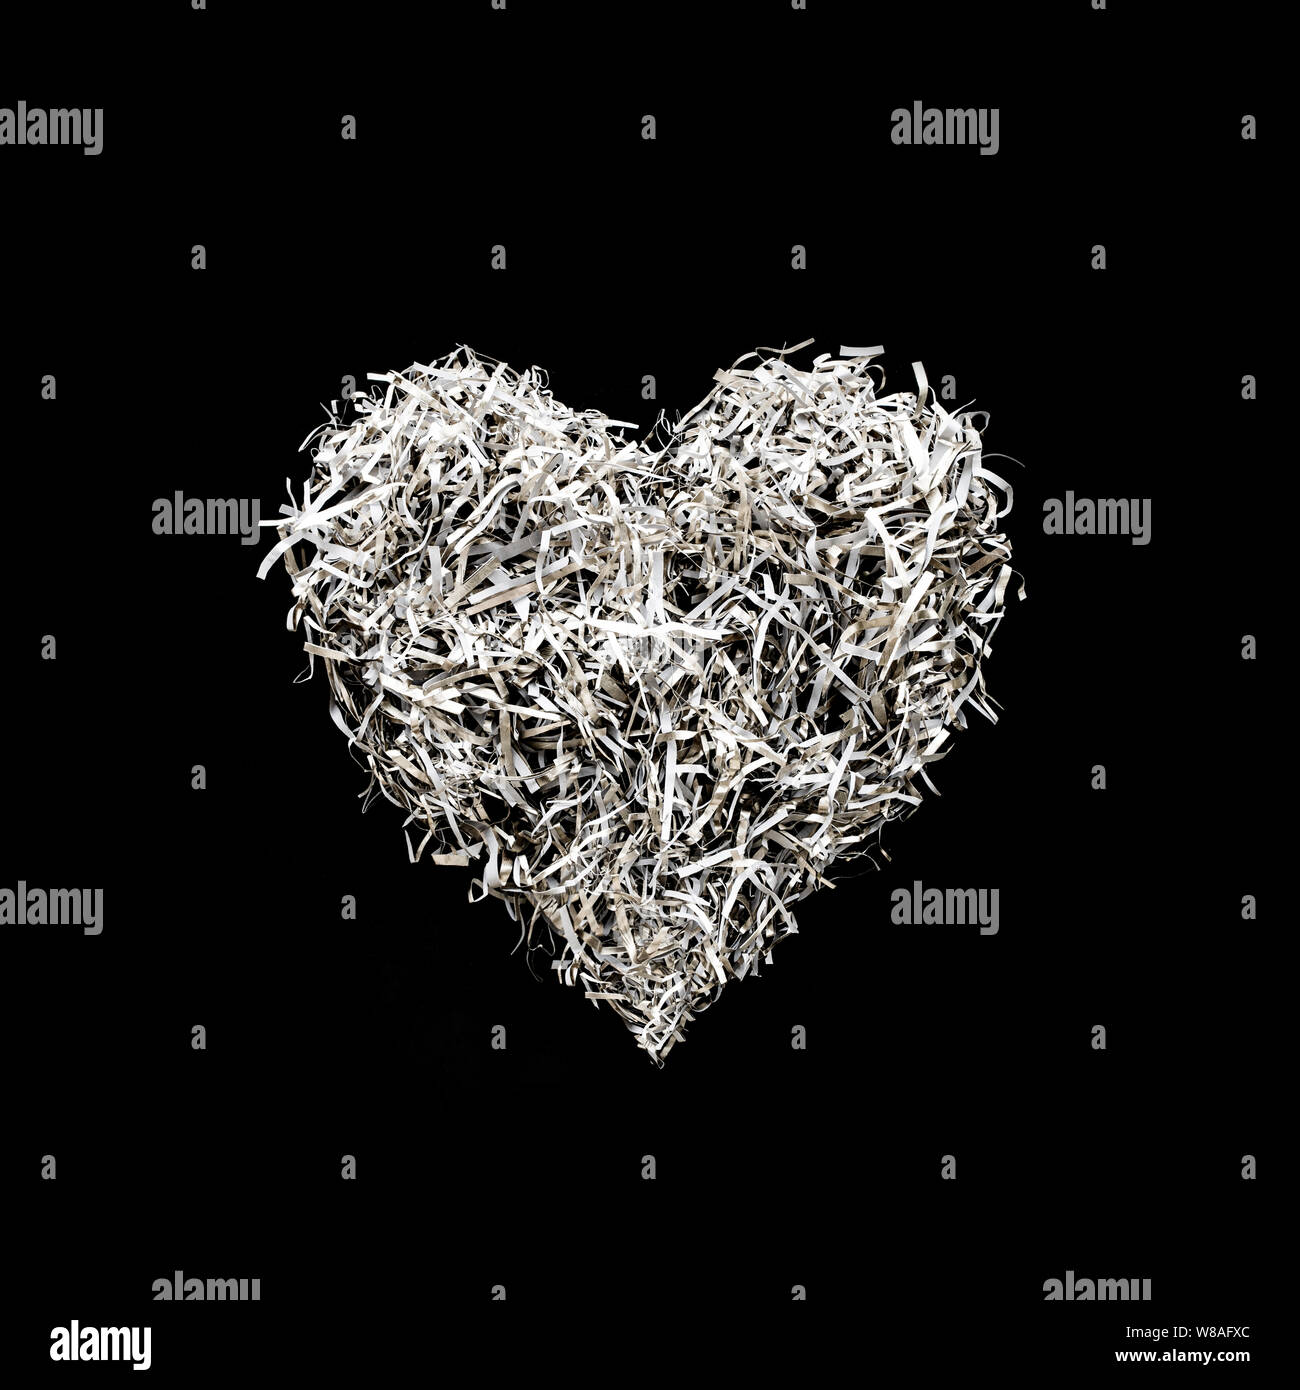 Heart Shape Decoration From Paper Art On Black Color Background Love Concepts Ideas Stock Photo Alamy